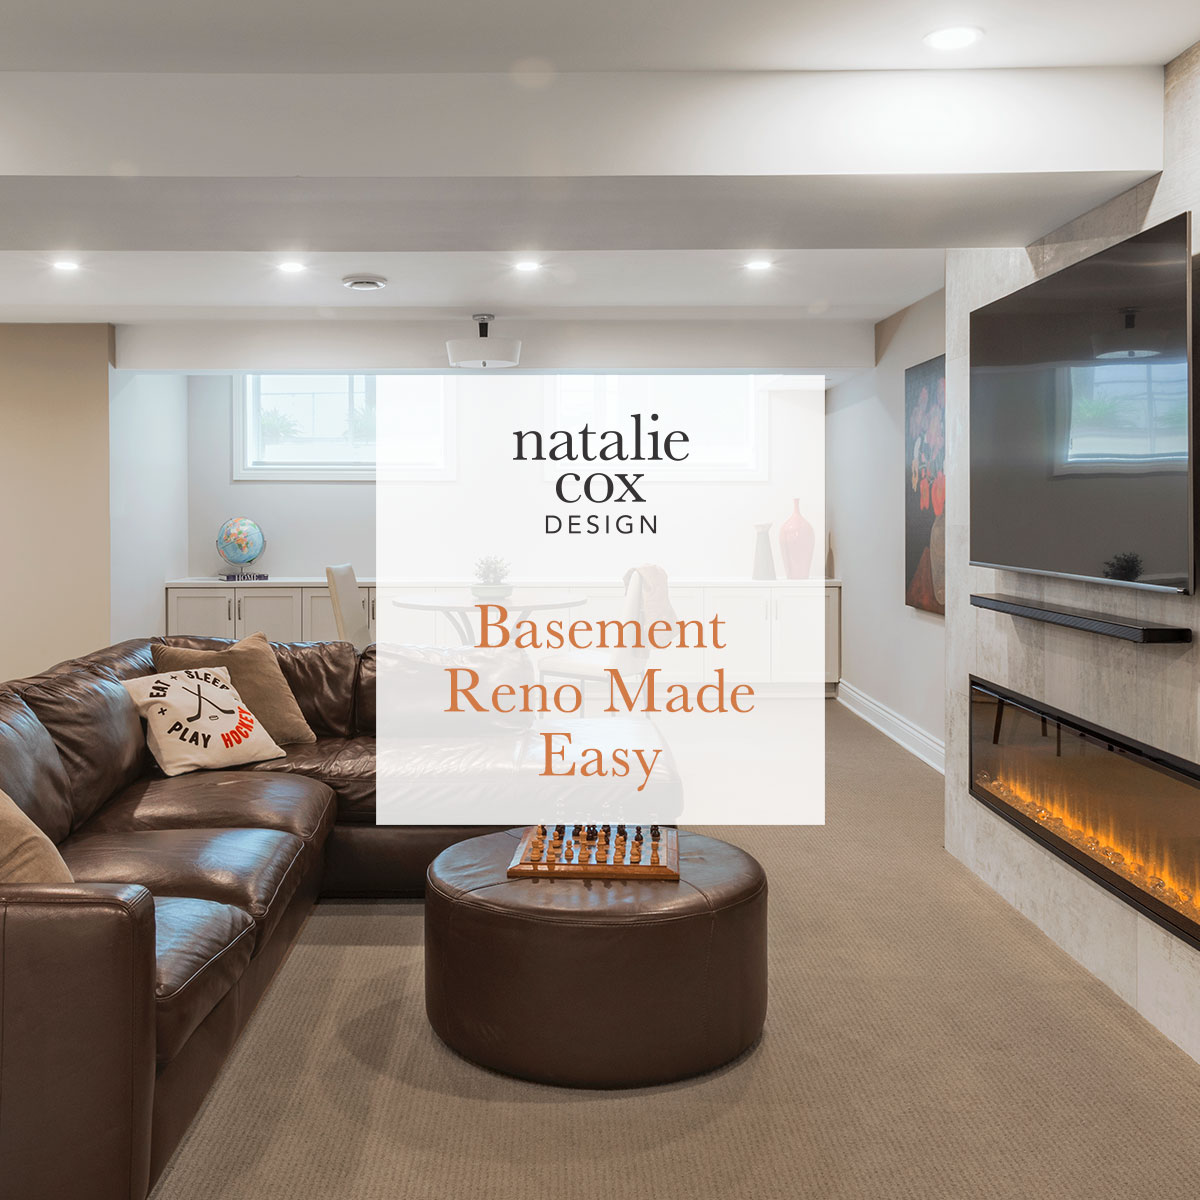 Basement Reno Made Easy - Natalie Cox Design - Interior Decorator - Ottawa, ON